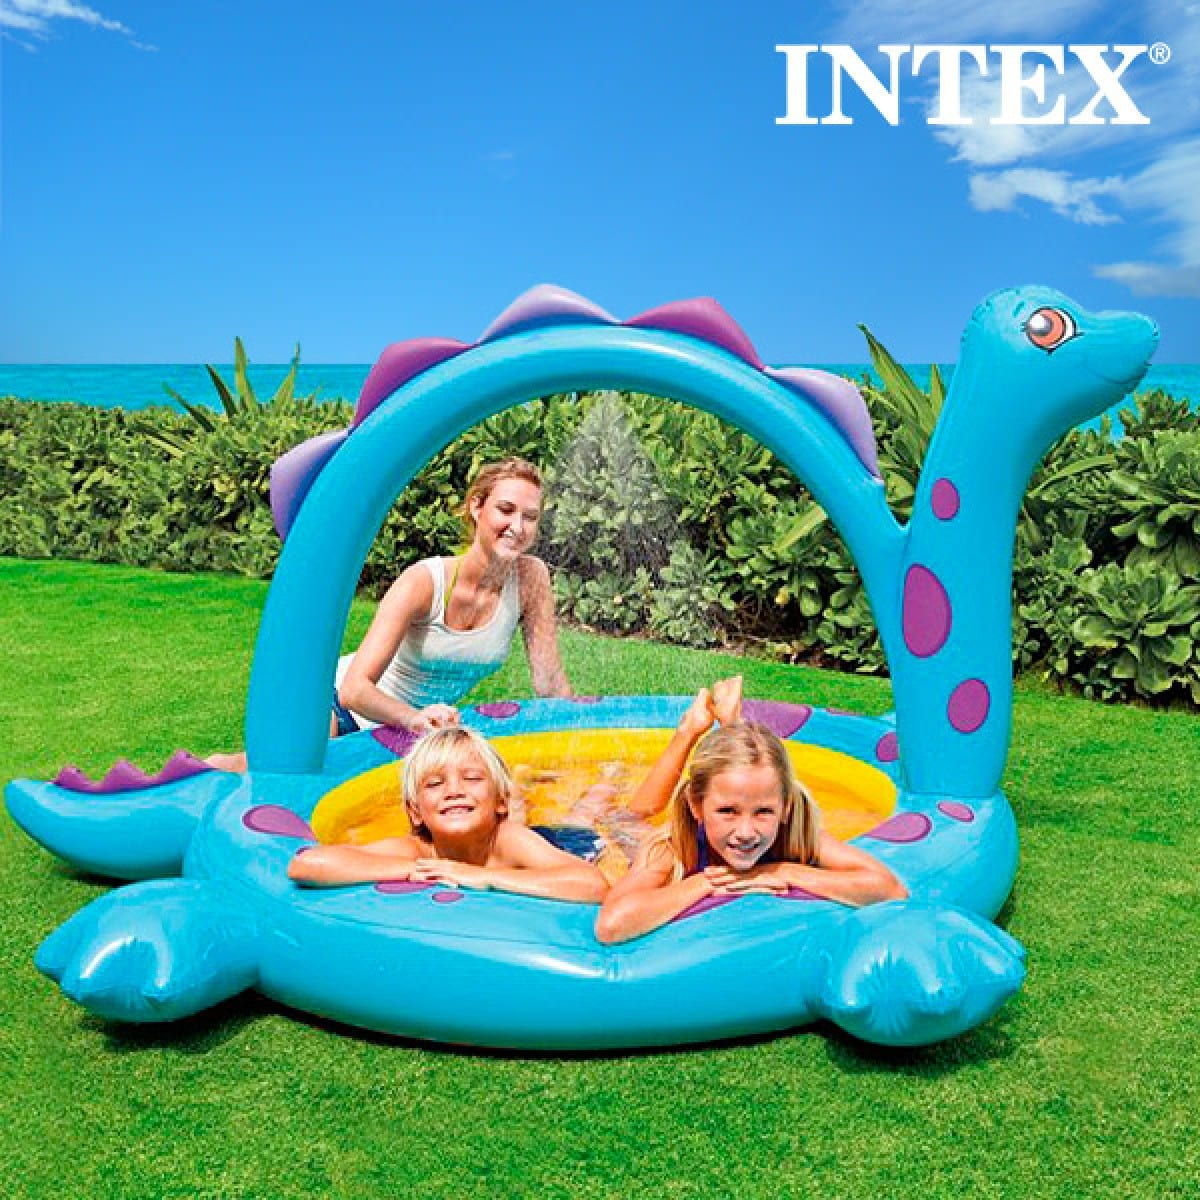 Piscina Intex Niños Piscina Inflable Con Dinosaurio Intex